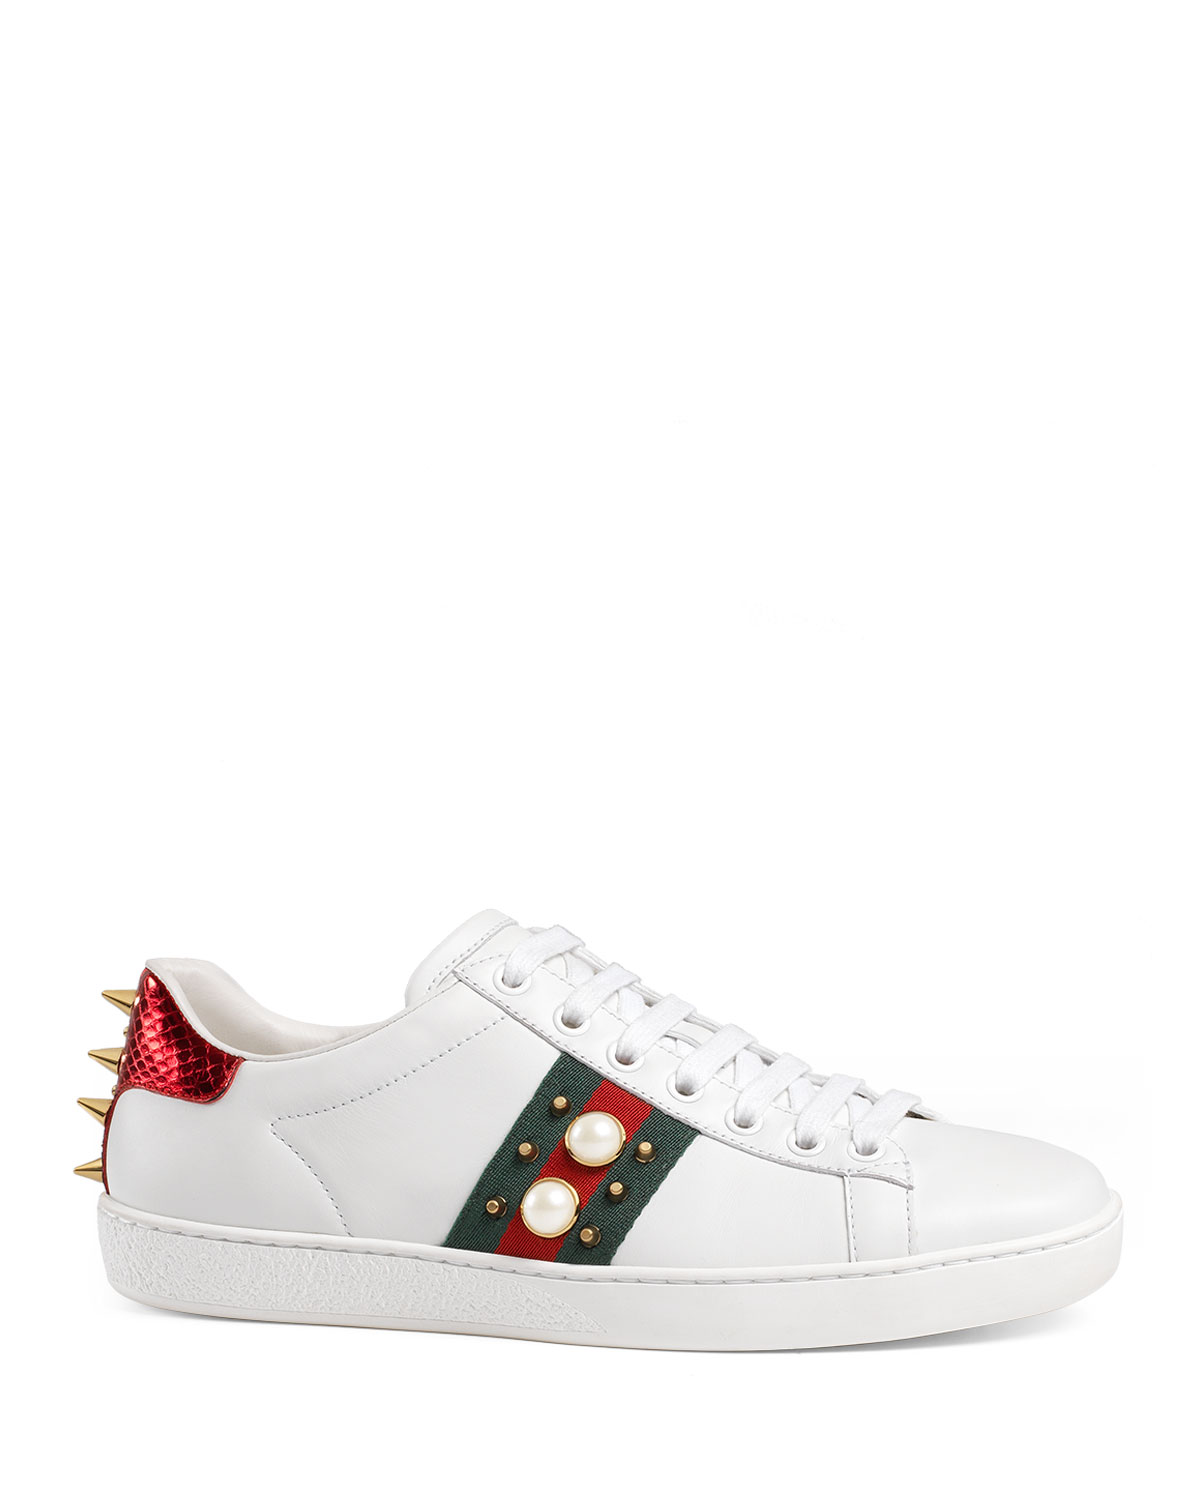 022bfd42d Gucci New Ace Studded Web Low-Top Sneakers, White | Neiman Marcus